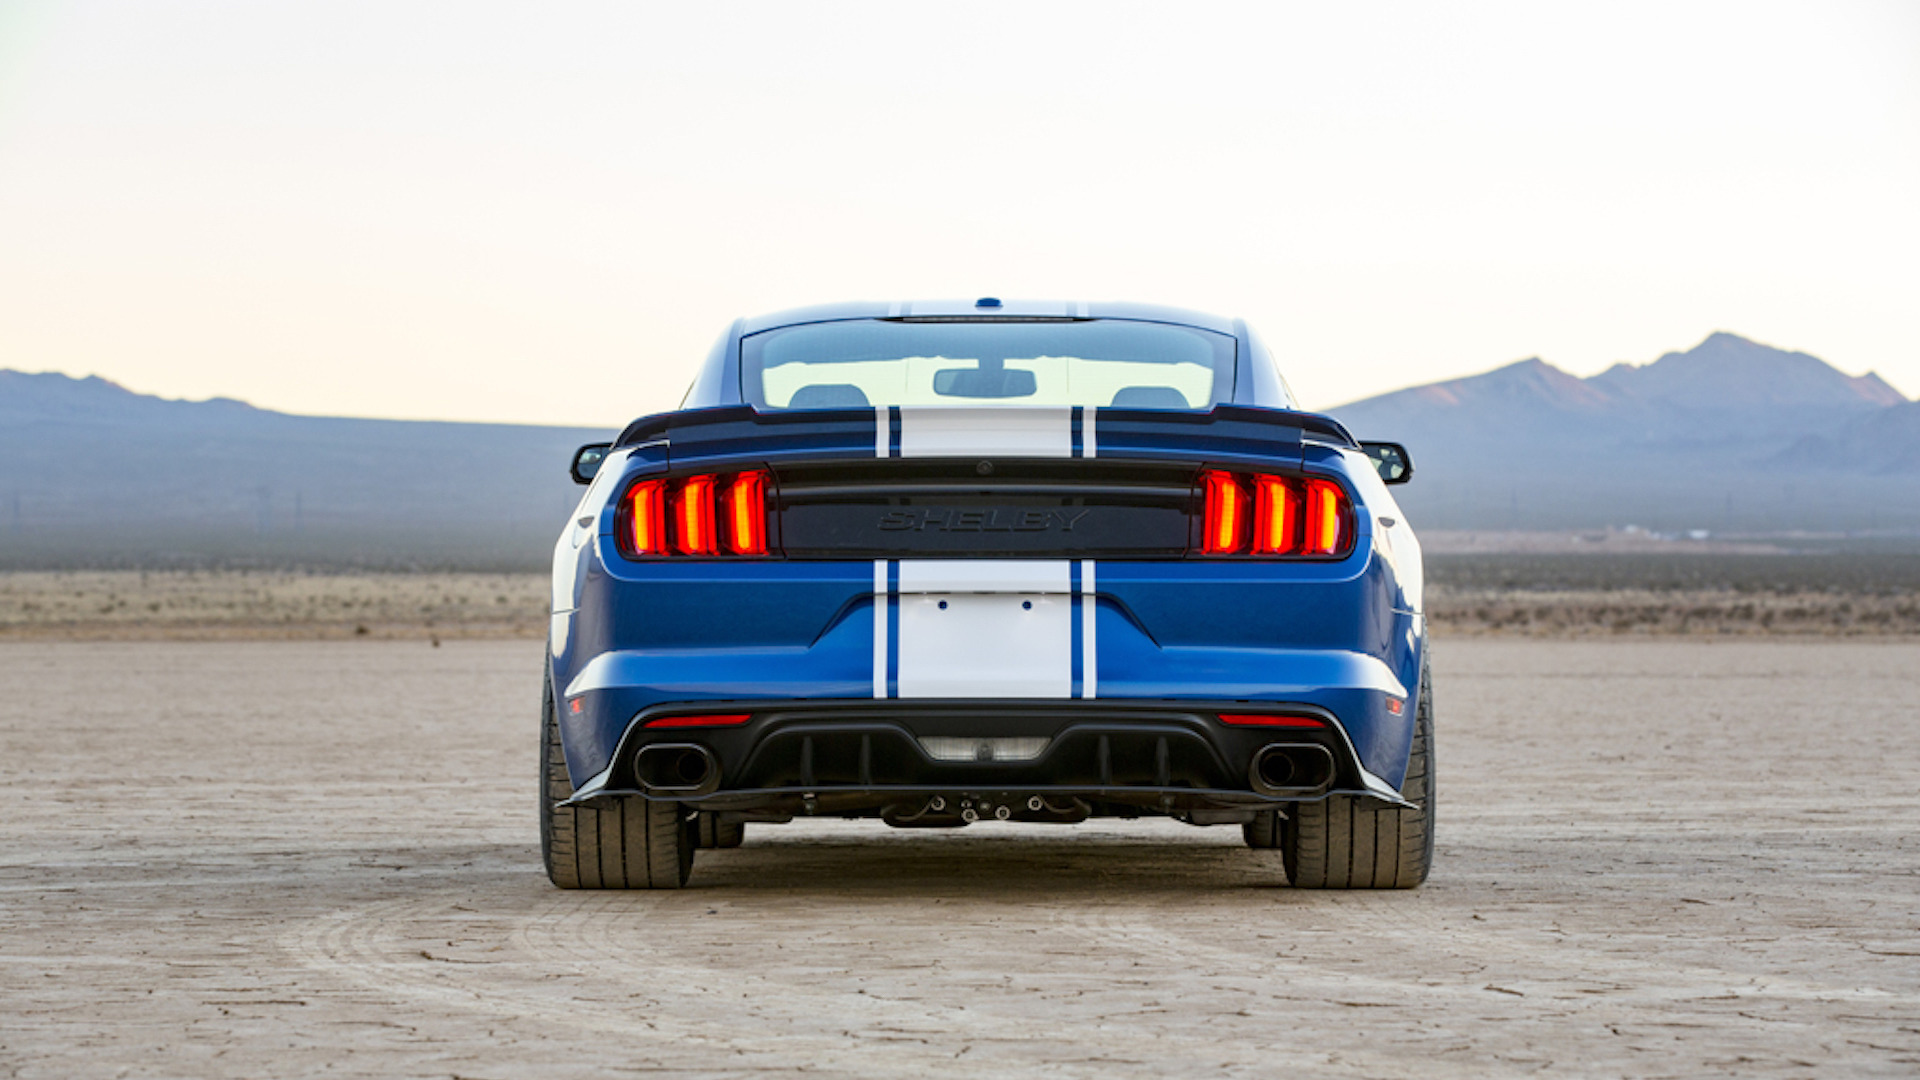 Ford Mustang Shelby Spuer Snake 50th Anniversary